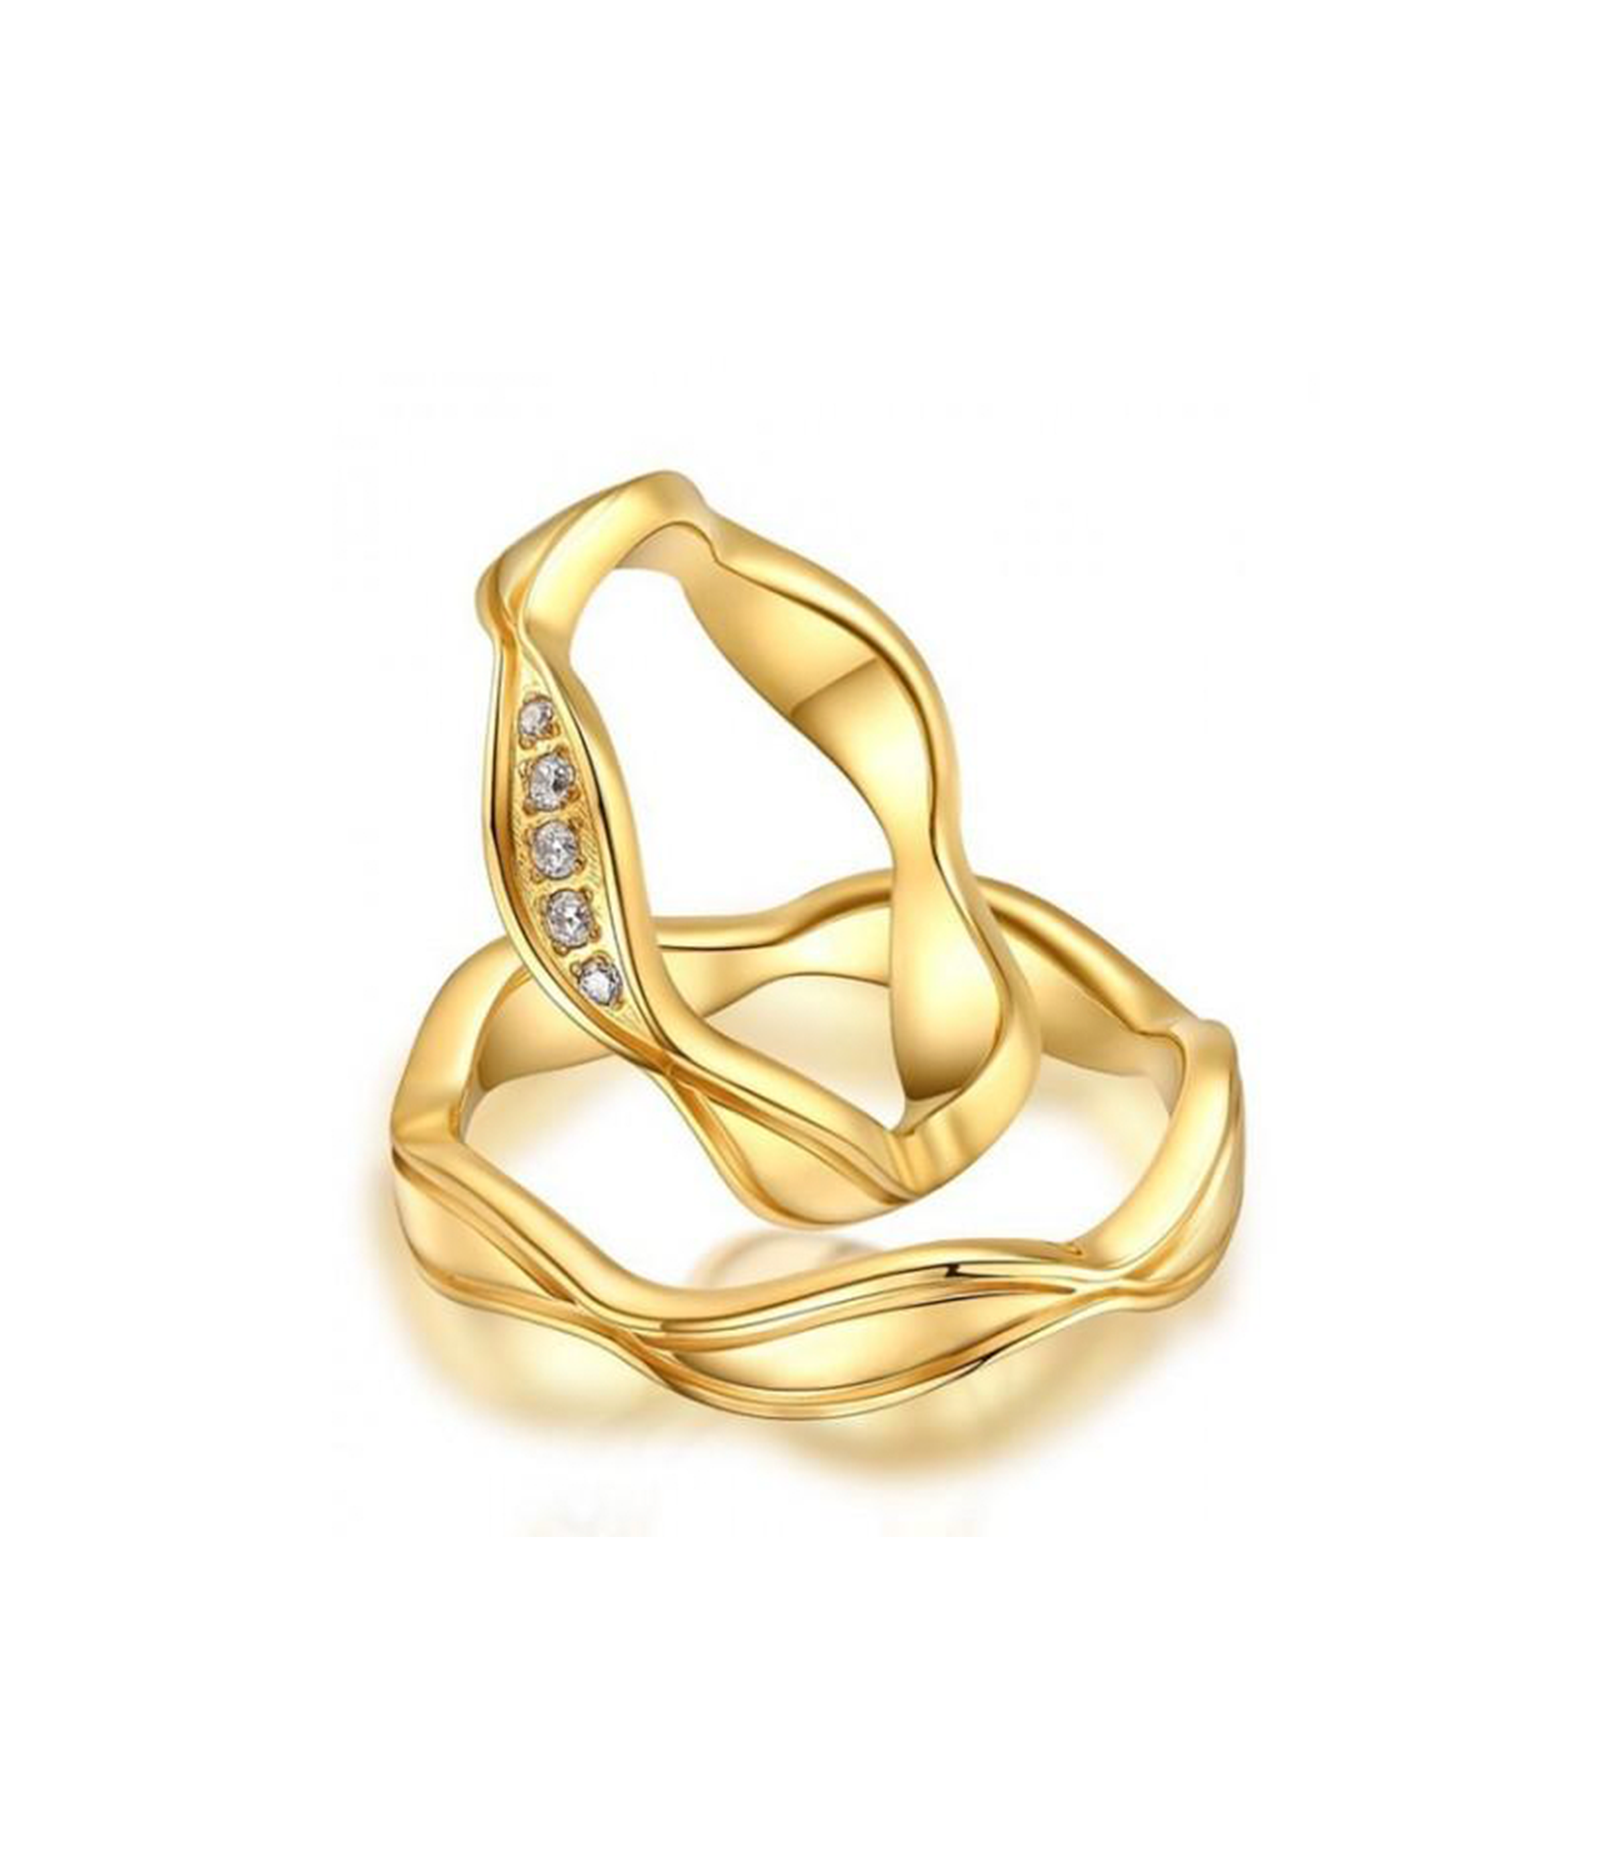 Alexis Gold Plated Titanium Wedding Ring with Swarovski Crystals (Unisex)